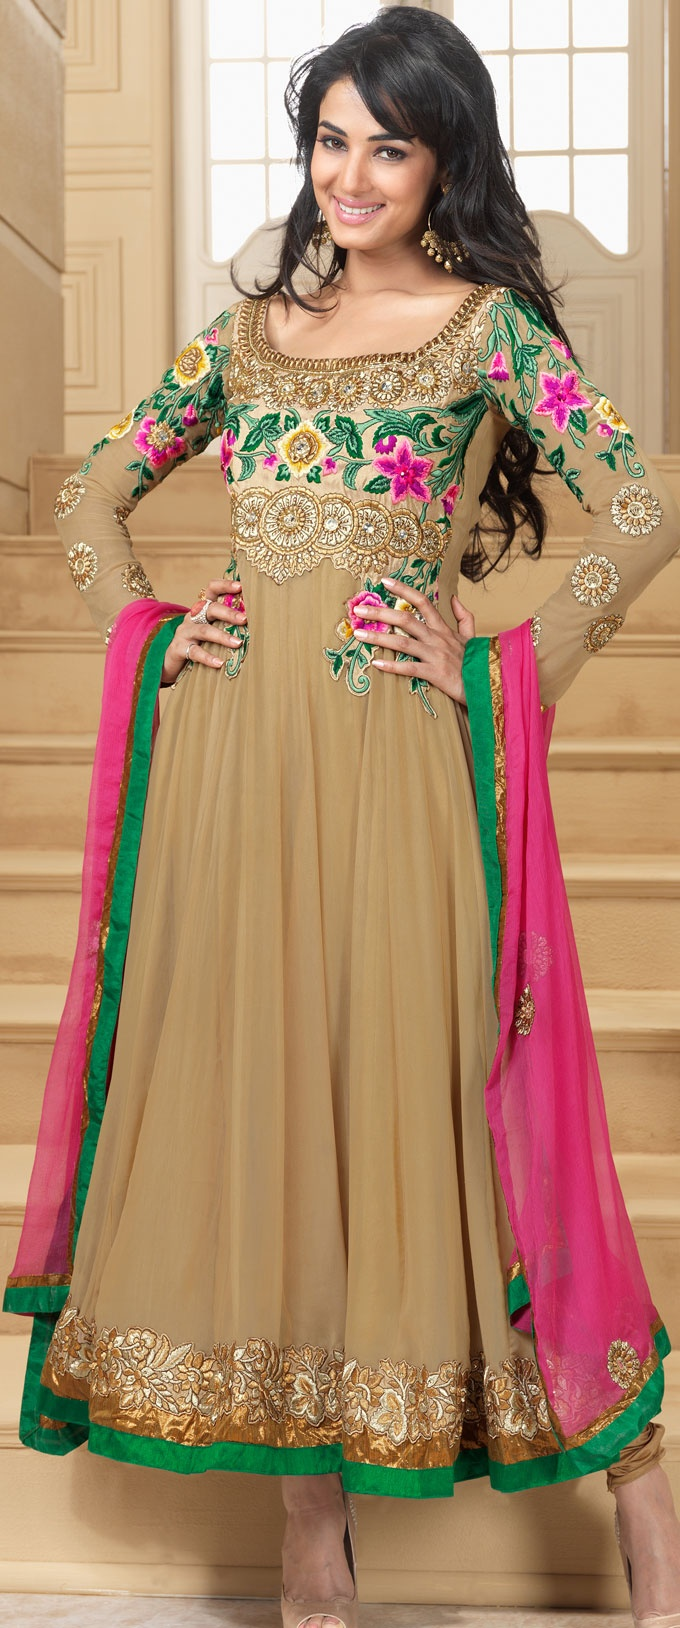 #Beige Faux Georgette #Churidar Anarkali #Suit | @ $133.92